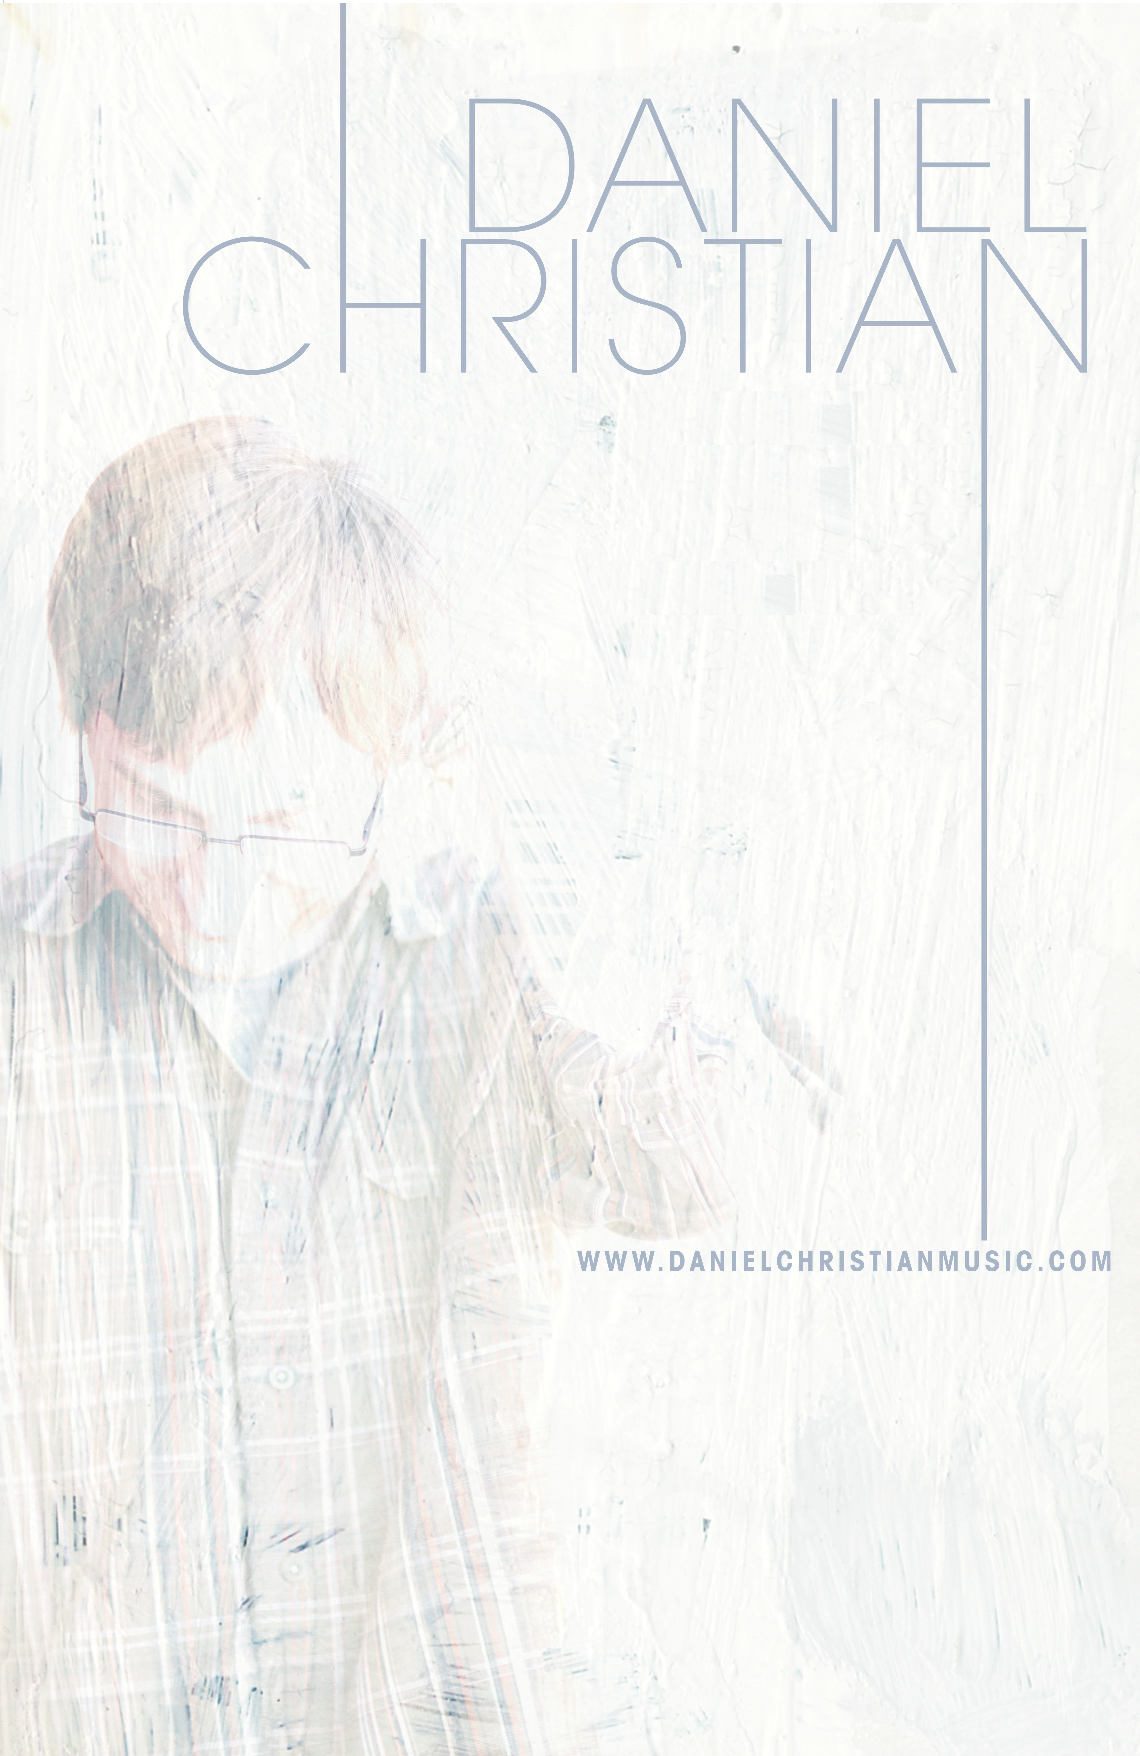 Daniel Christian | Singer-Songwriter